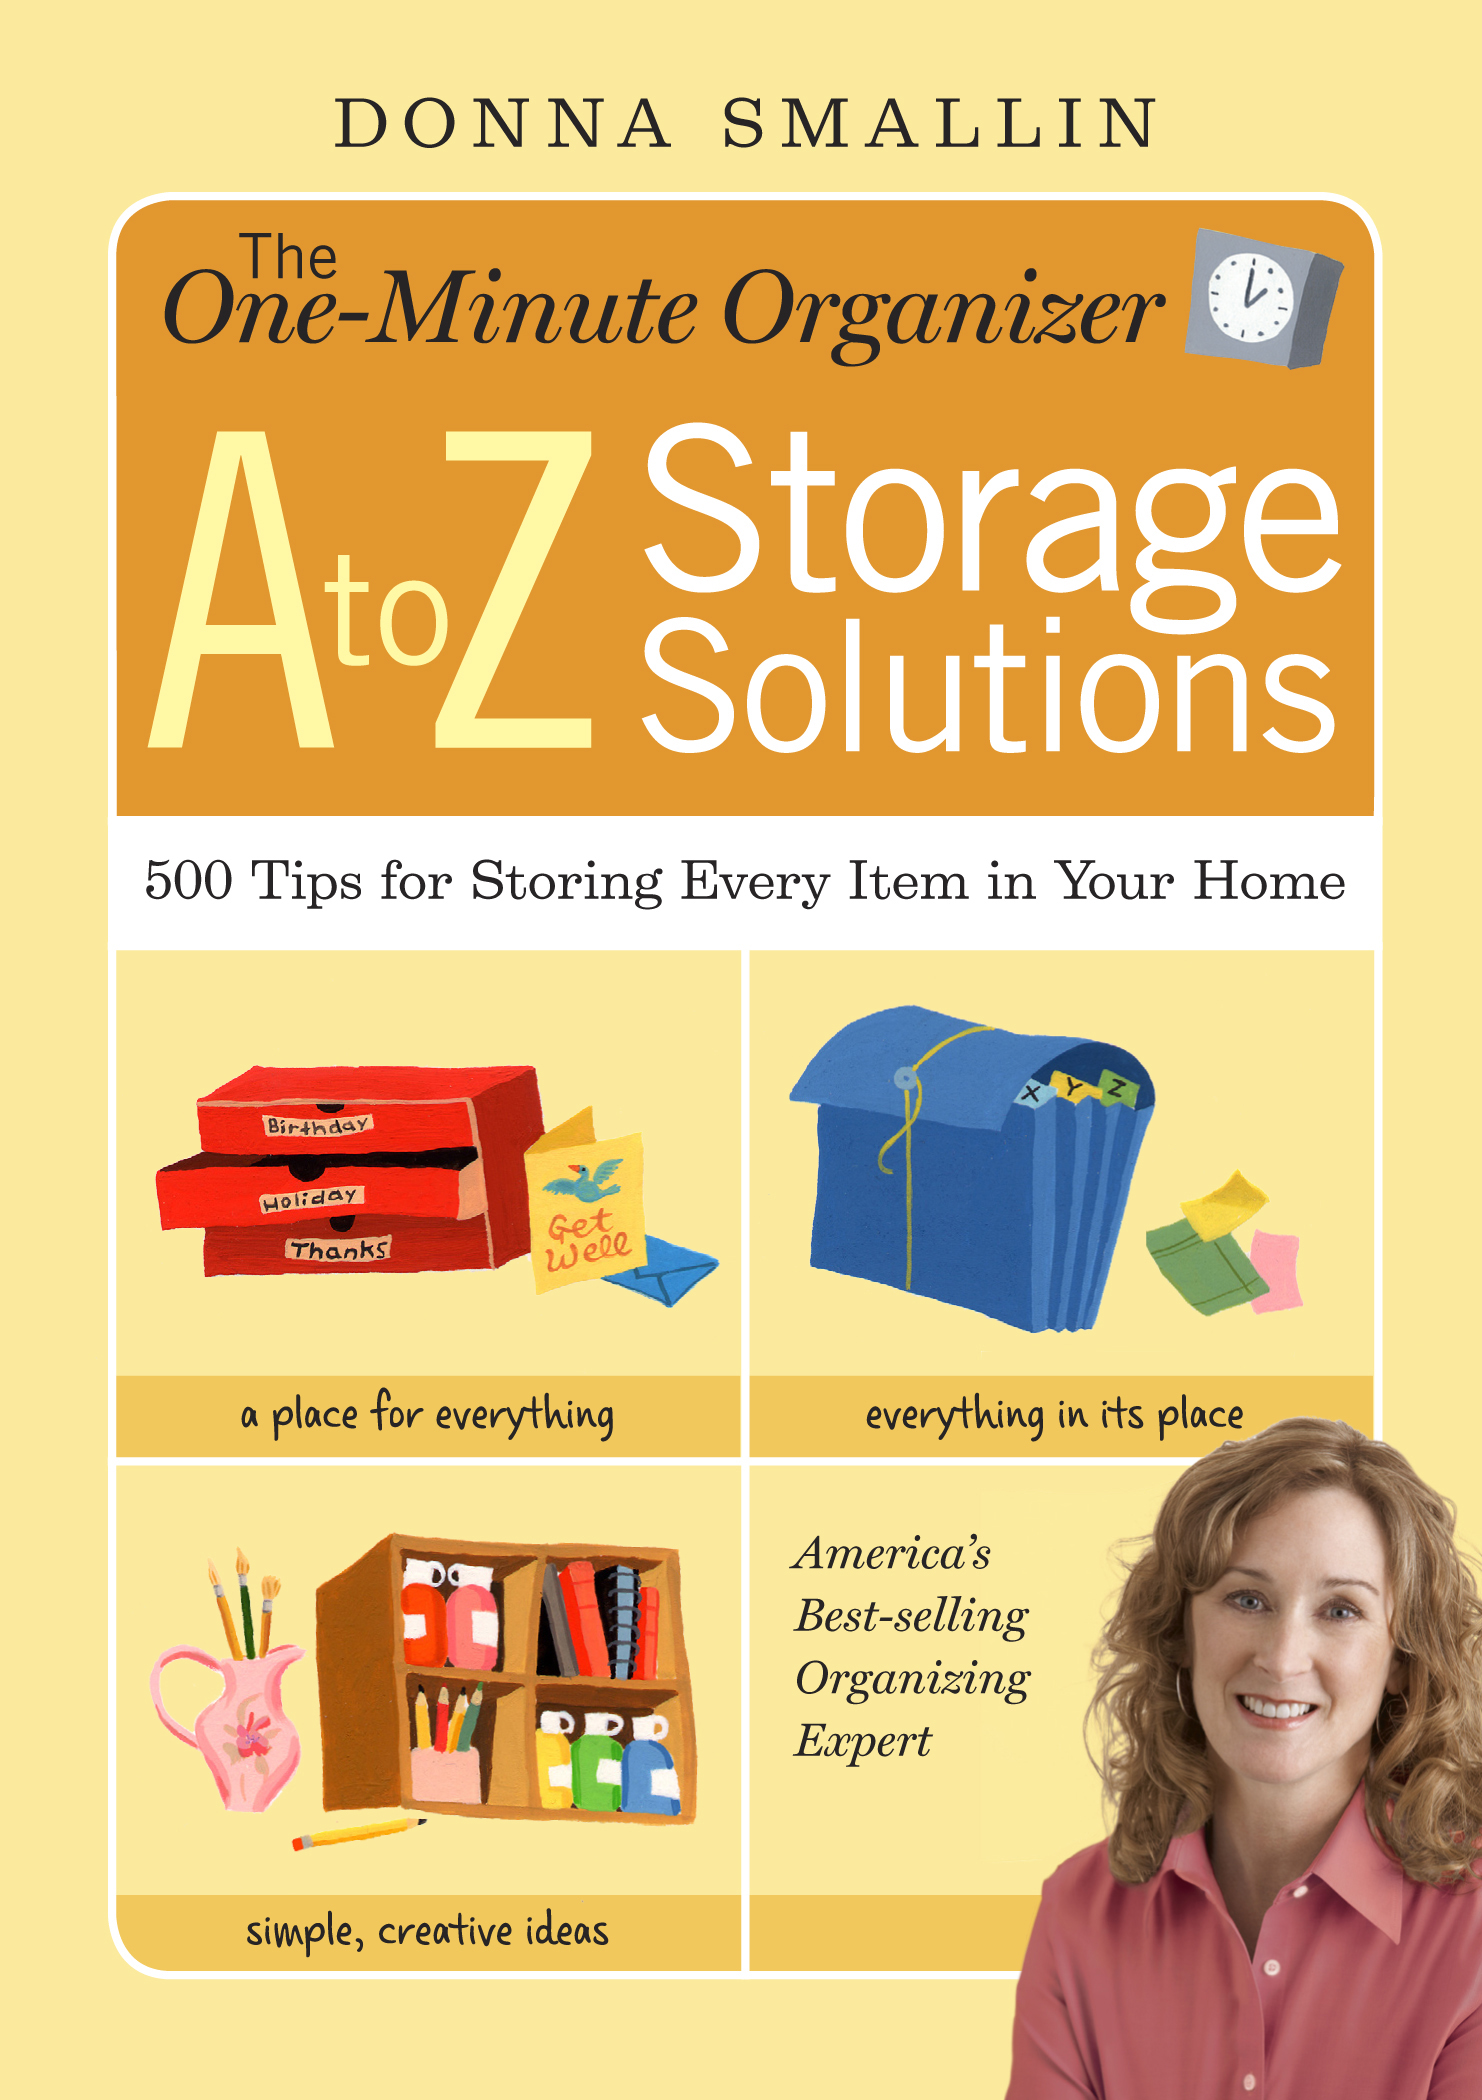 The One-Minute Organizer A to Z Storage Solutions 500 Tips for Storing Every Item in Your Home - Donna Smallin